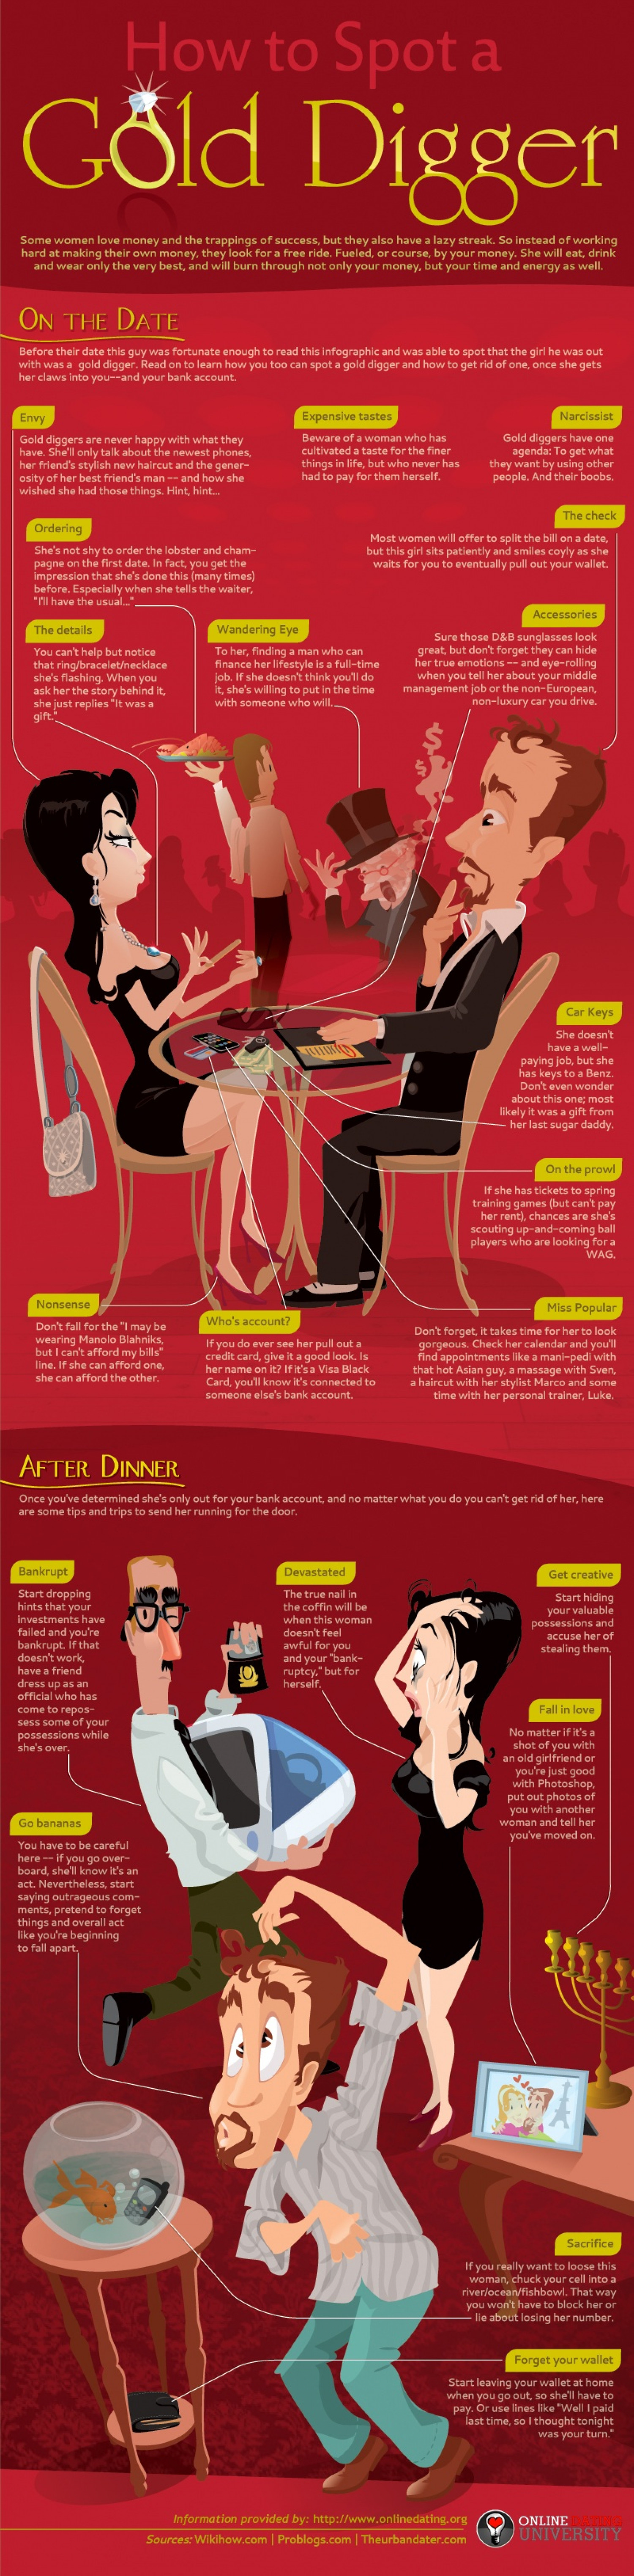 How to Spot a Gold Digger Infographic